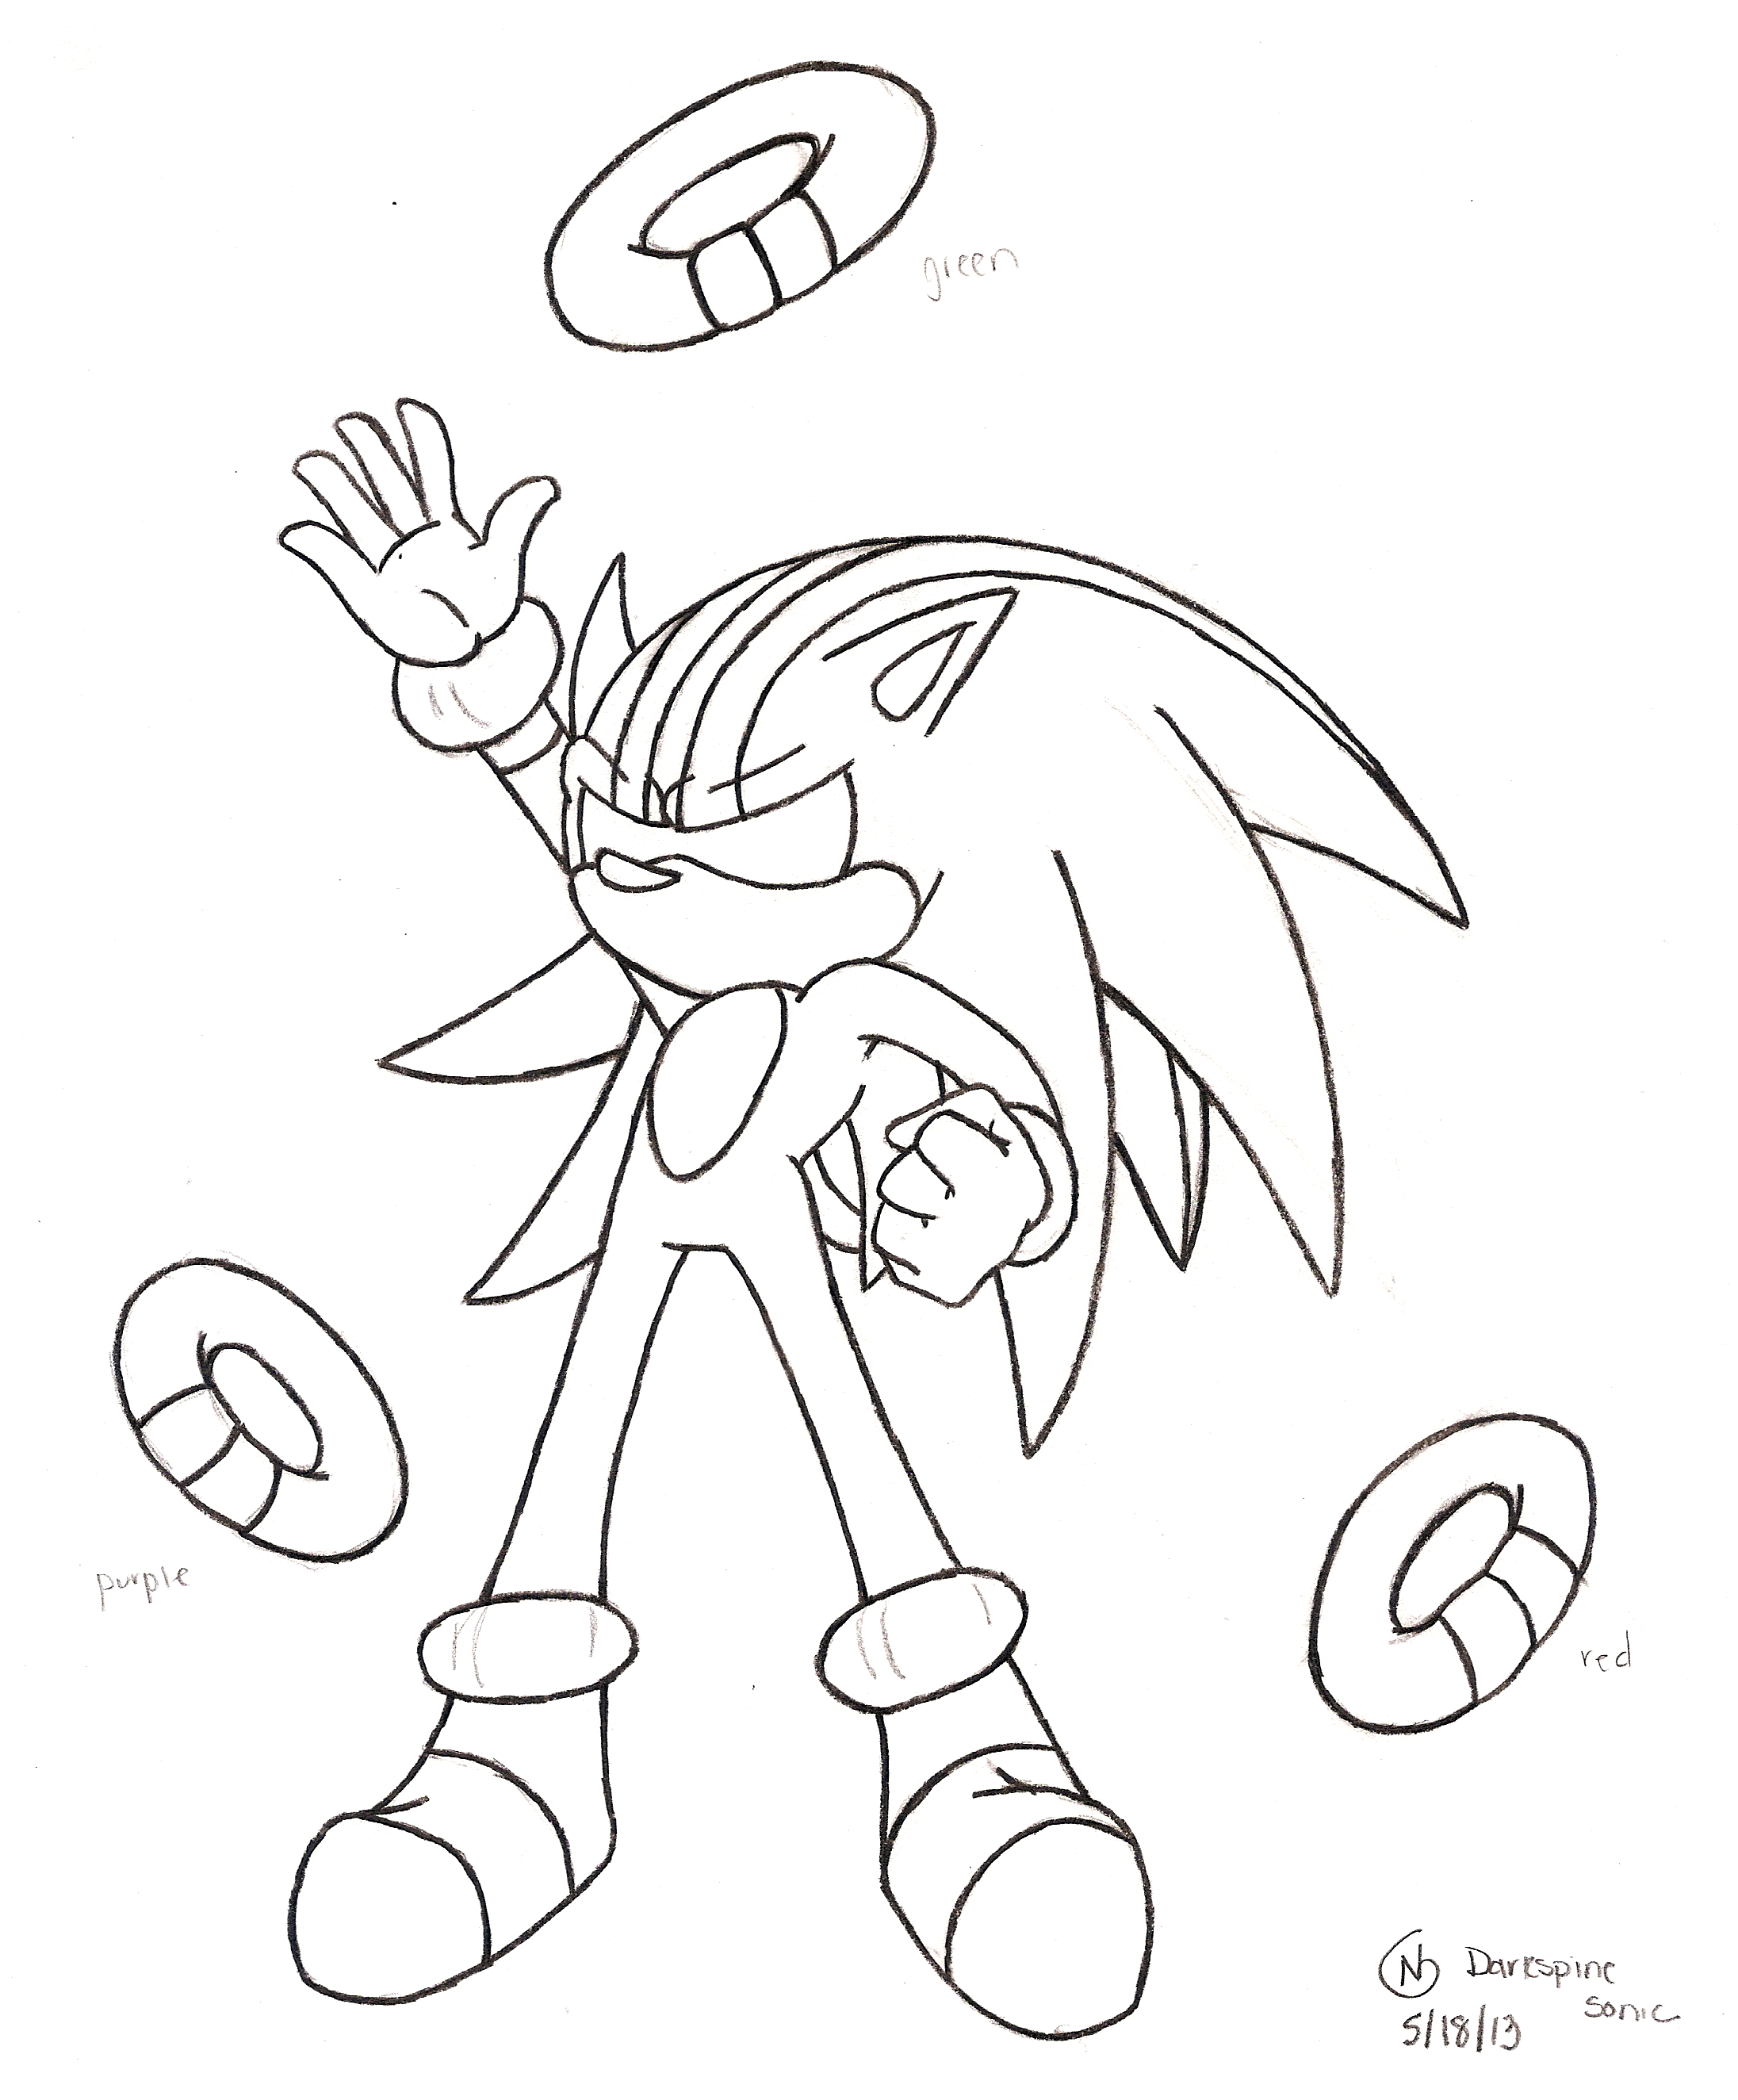 john 9 1 41 coloring page - darkspine sonic free colouring pages